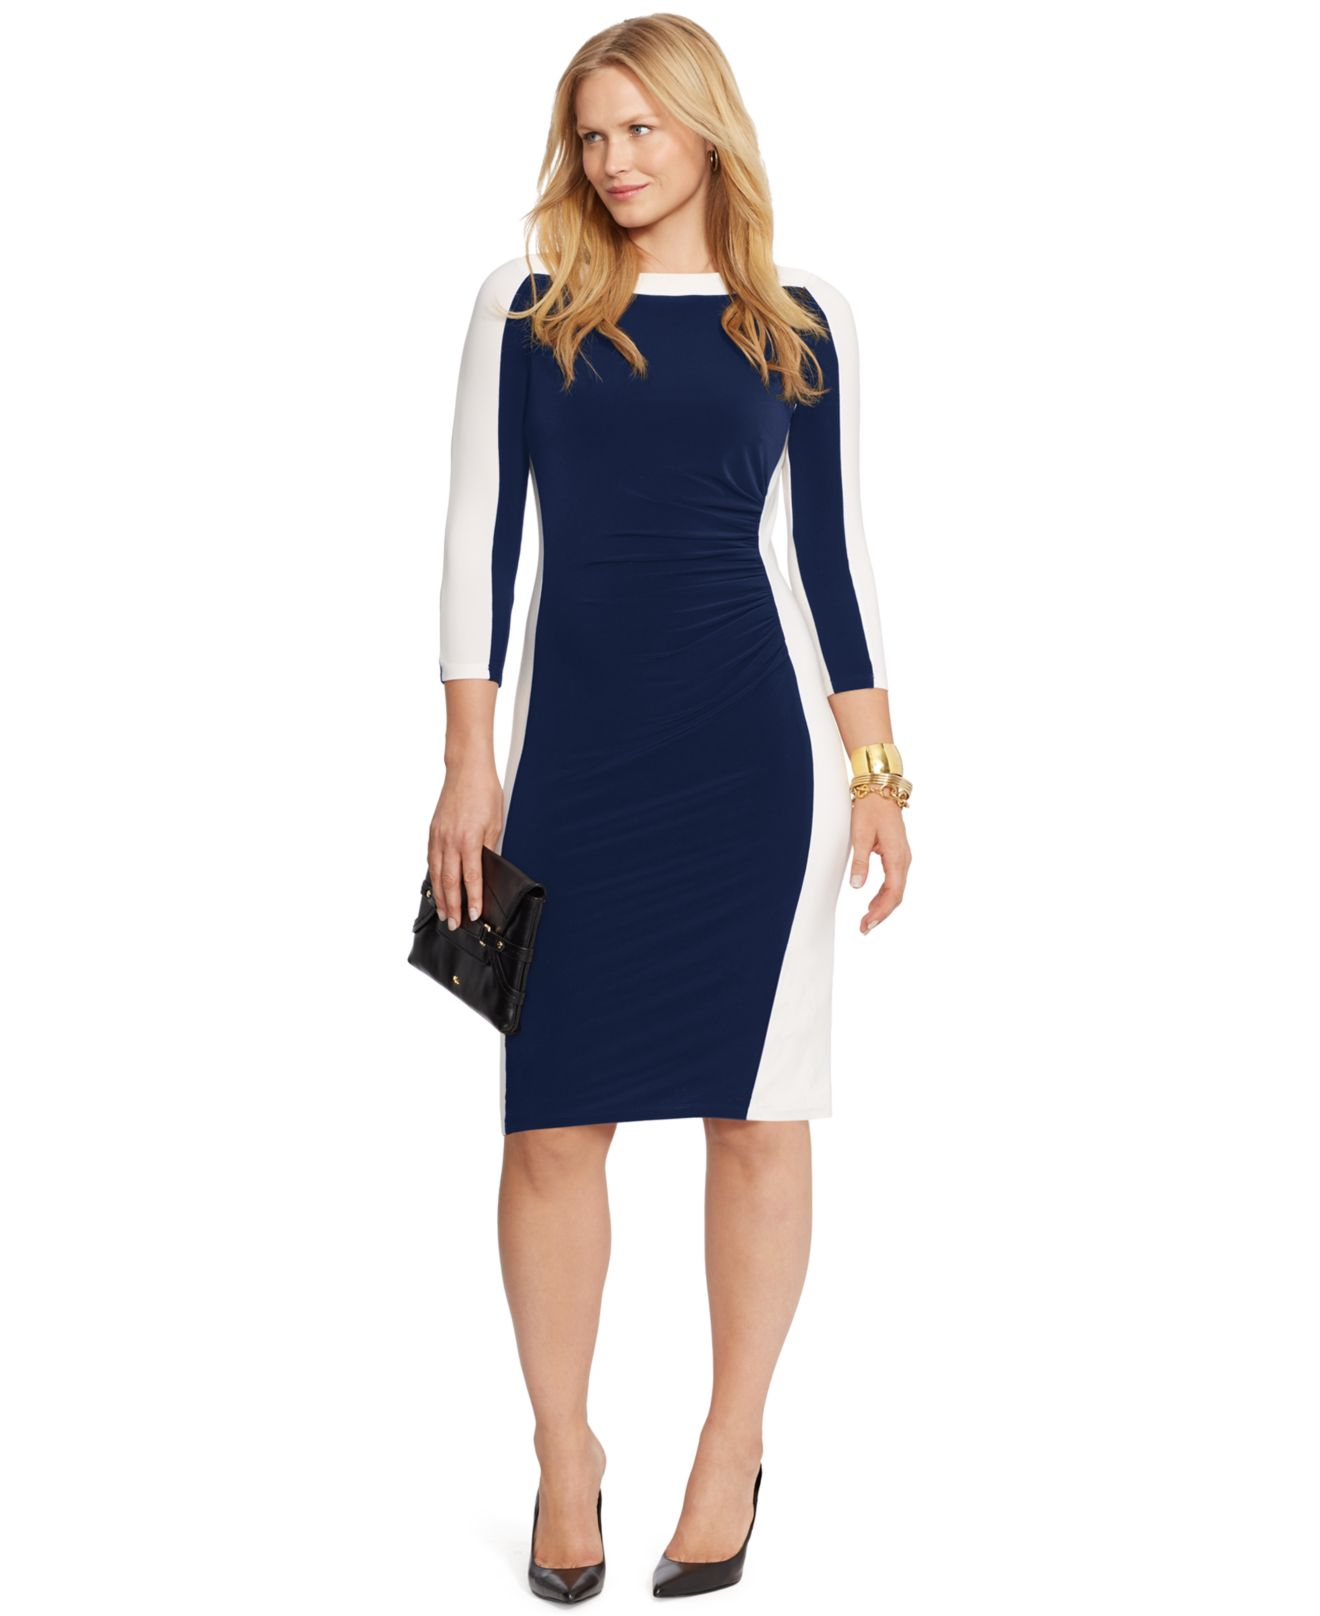 Lauren by Ralph Lauren Blue Plus Size Colorblocked Sheath Dress